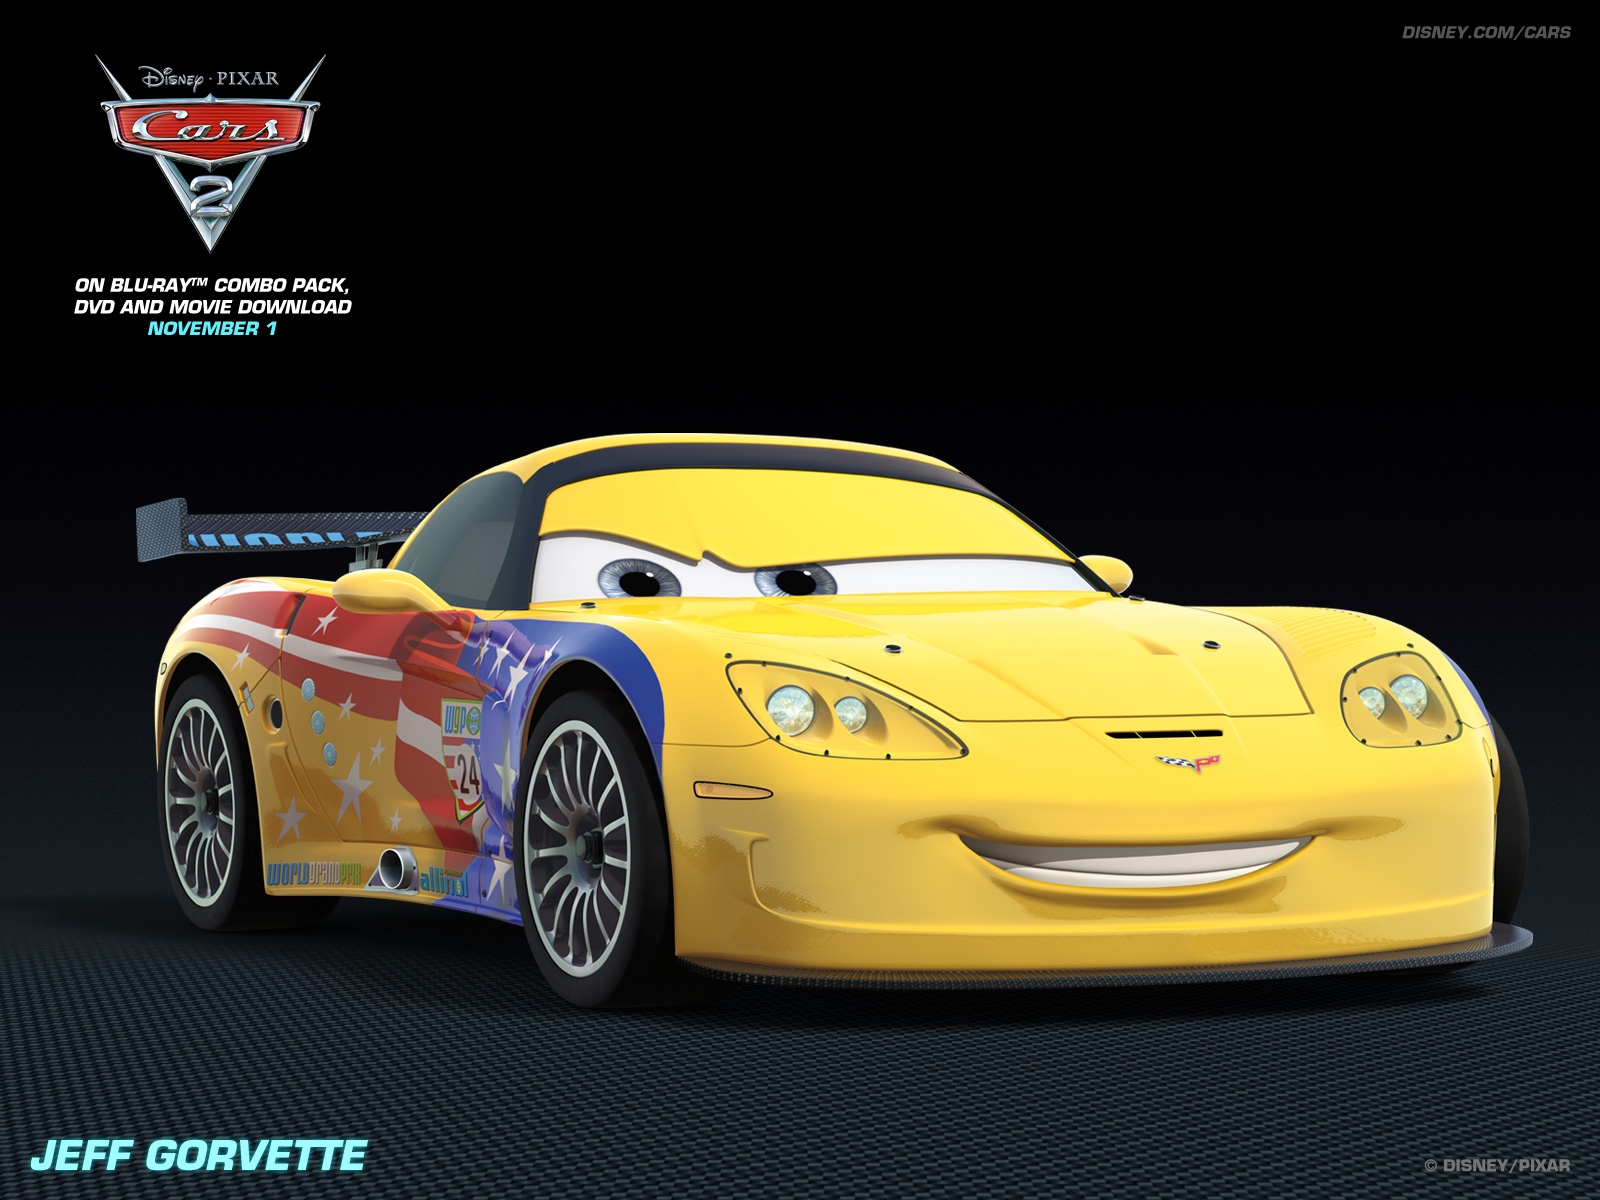 jeff grovette disney pixar cars 2 free hd wallpaper 1600 1200